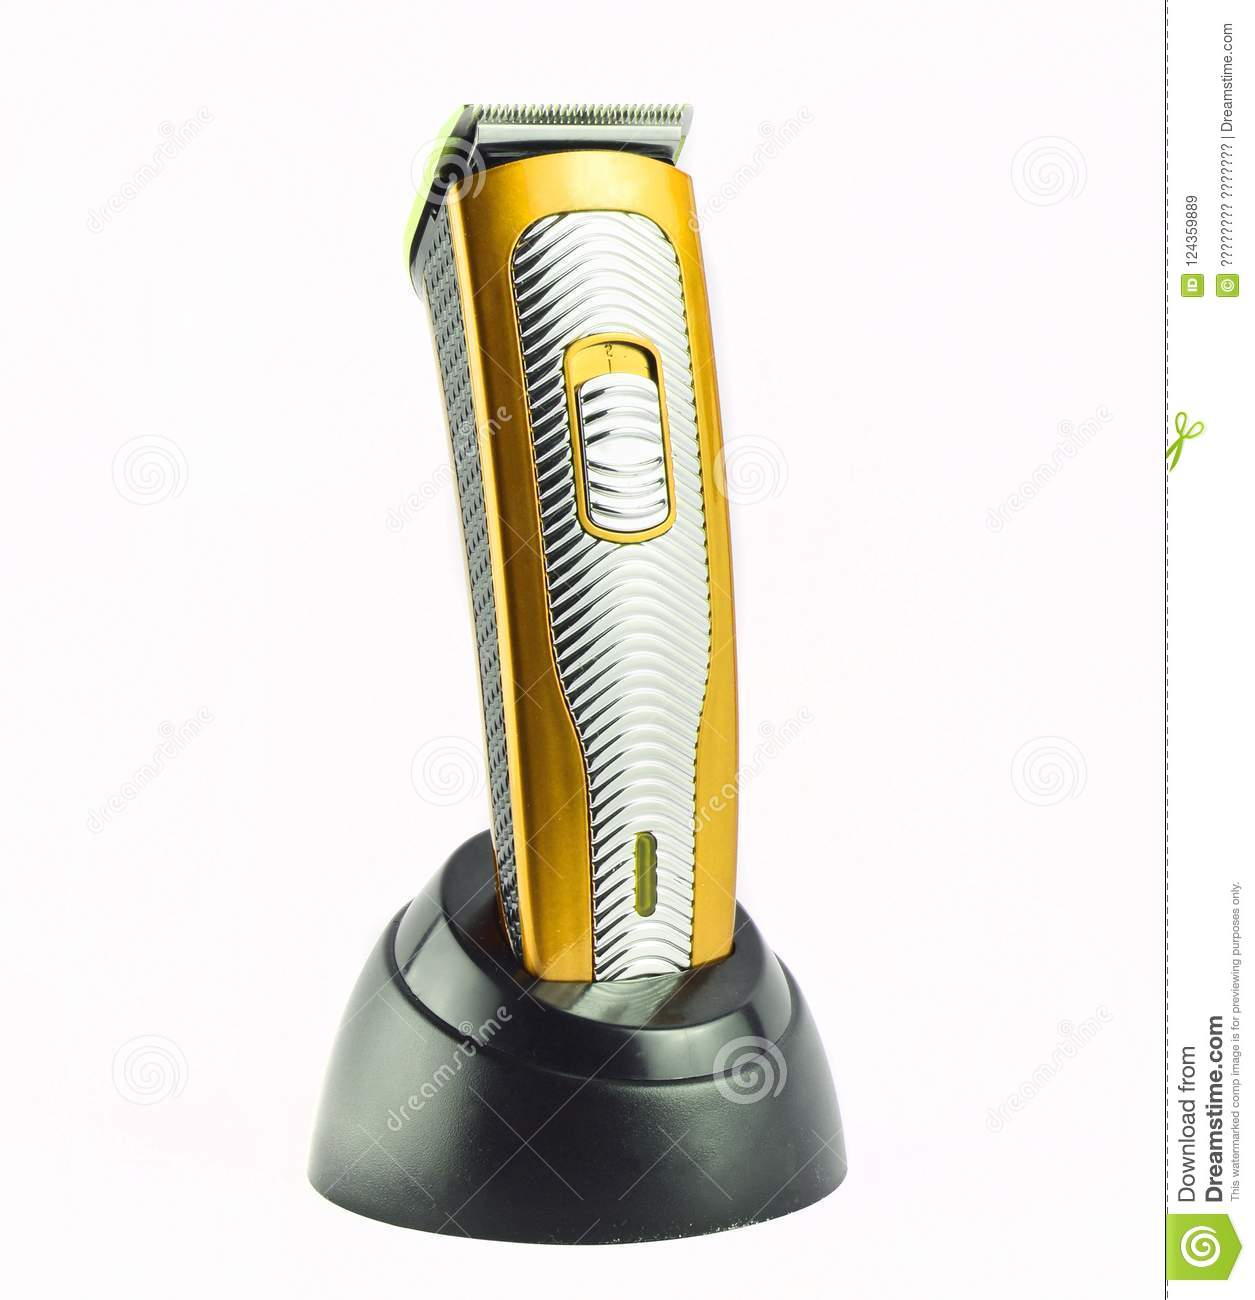 Wireless clipper stands on a charging station isolated on a whit